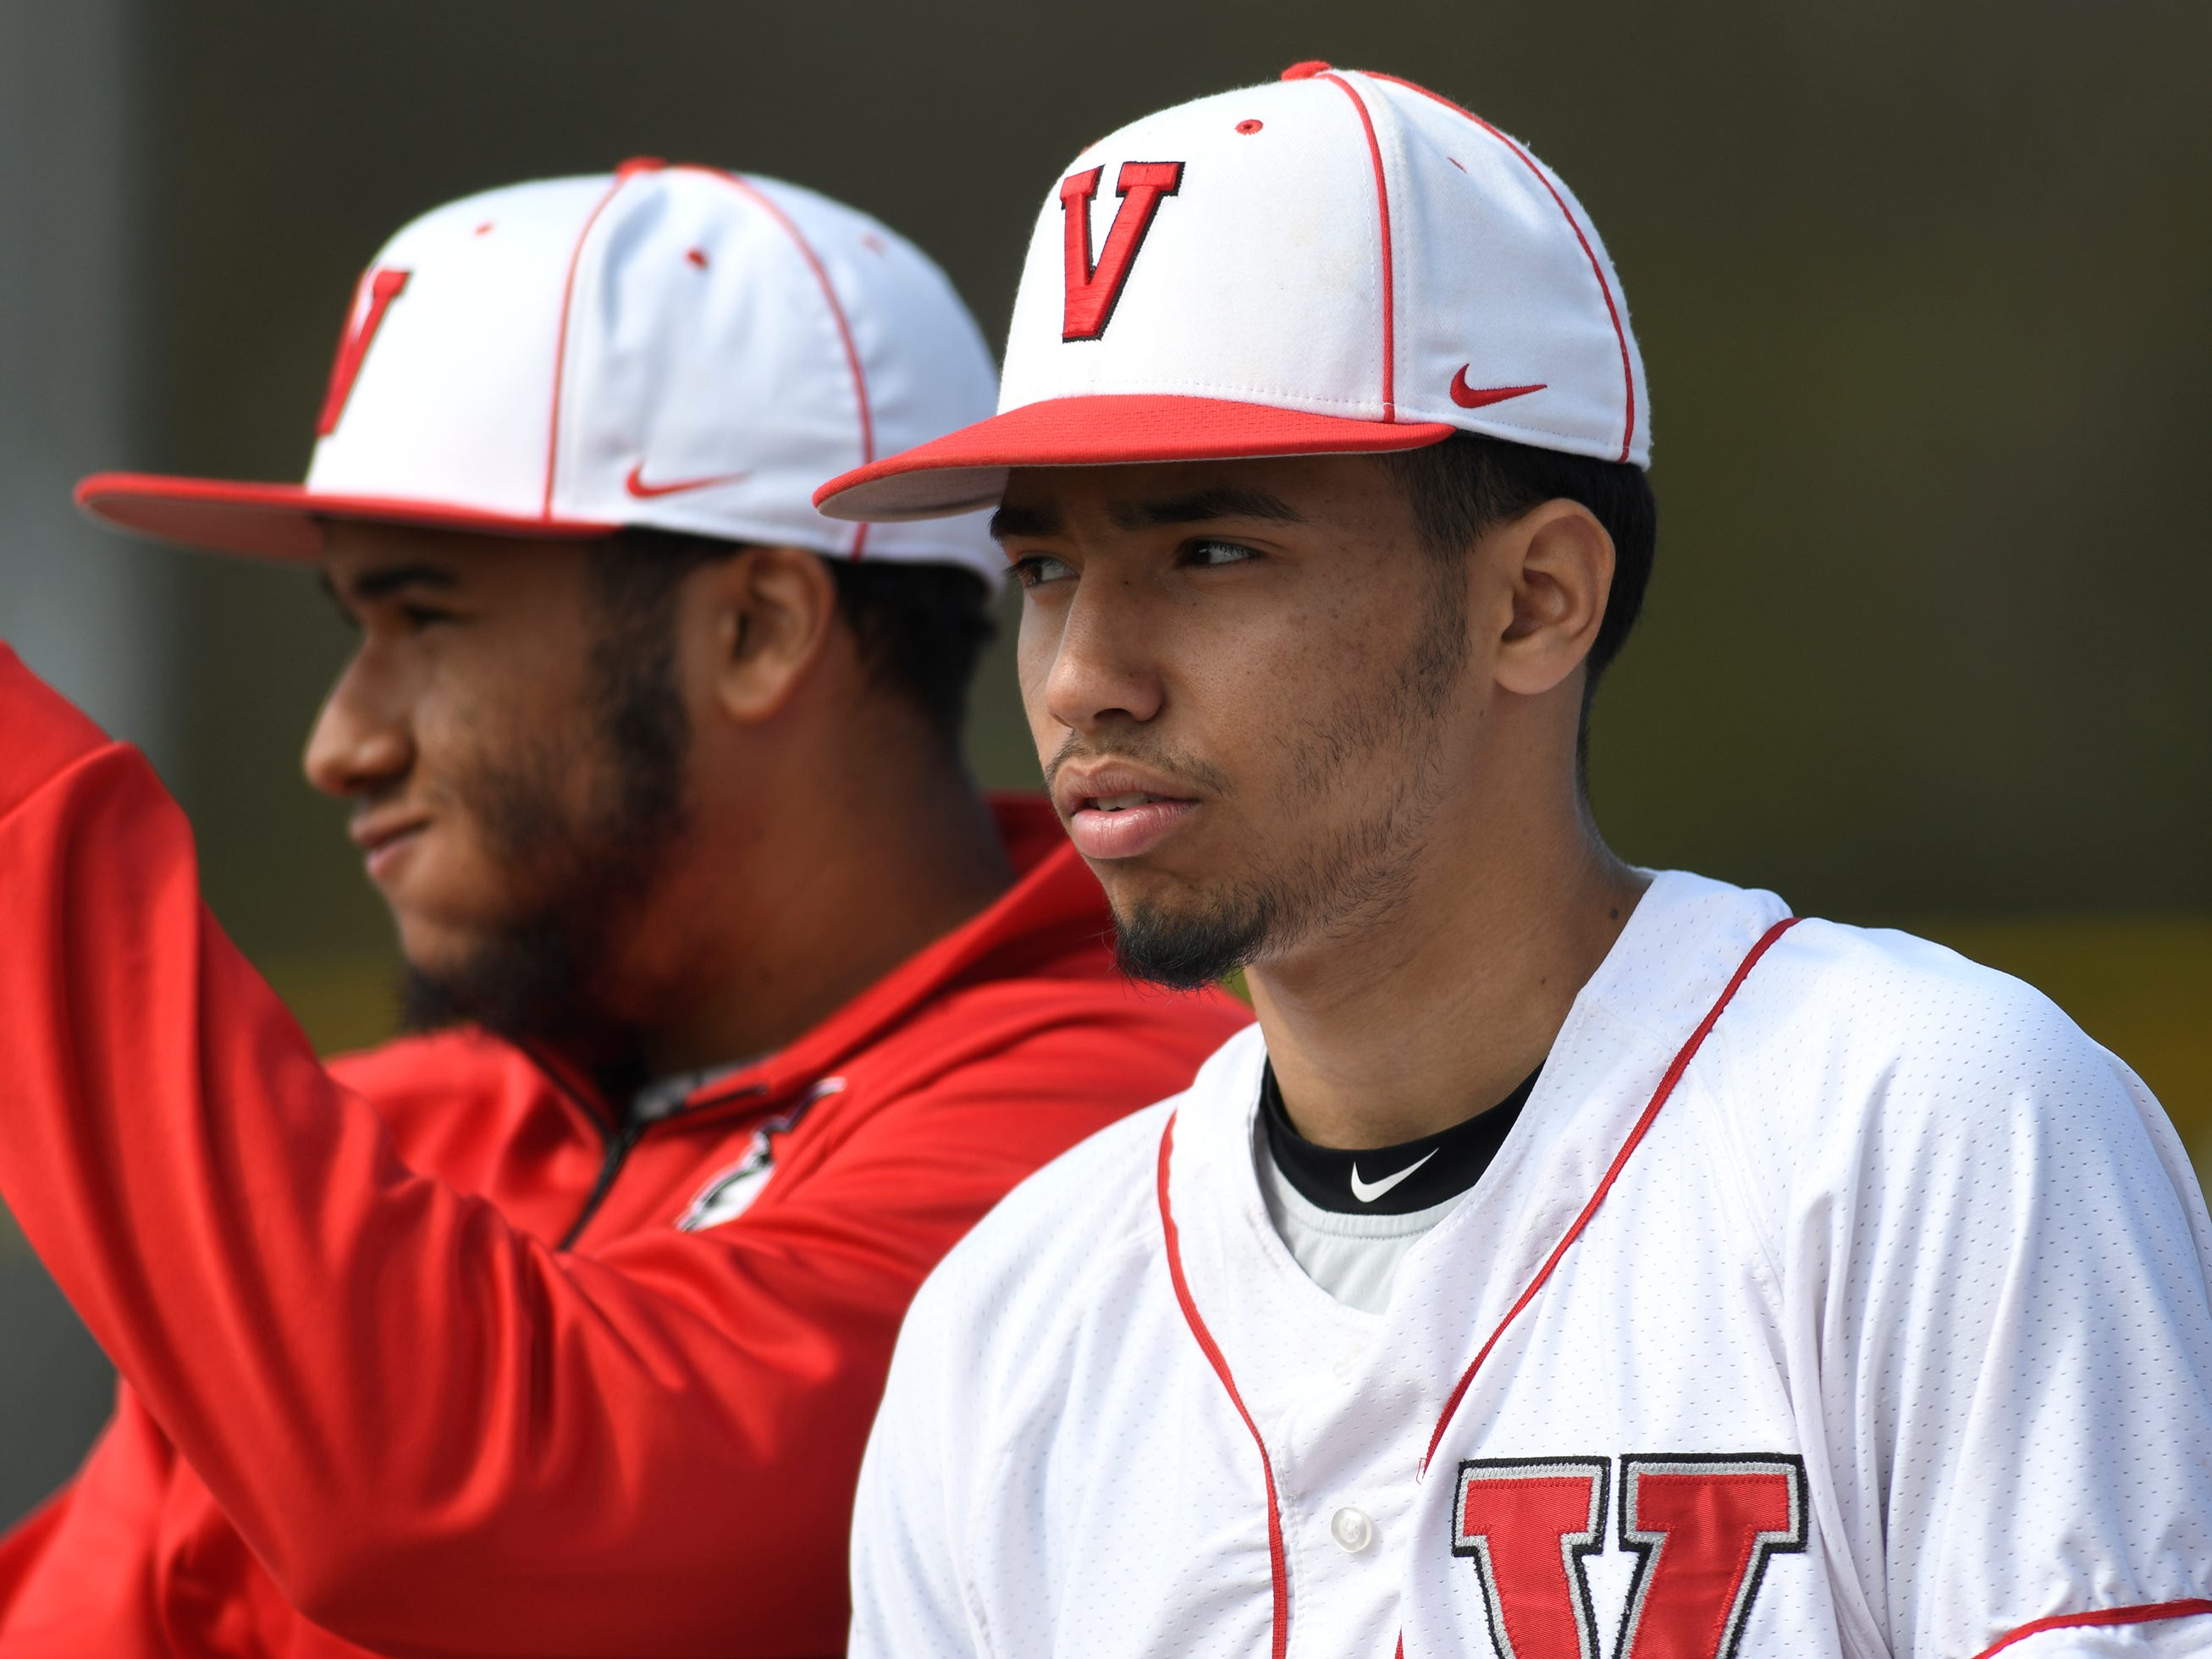 Vineland coach John Malatesta selected Andrew Rodriguez, right, as one of the team captains before Wednesday's matchup against Atlantic City. The Fighting Clan dismantled the visiting Vikings 12-2.